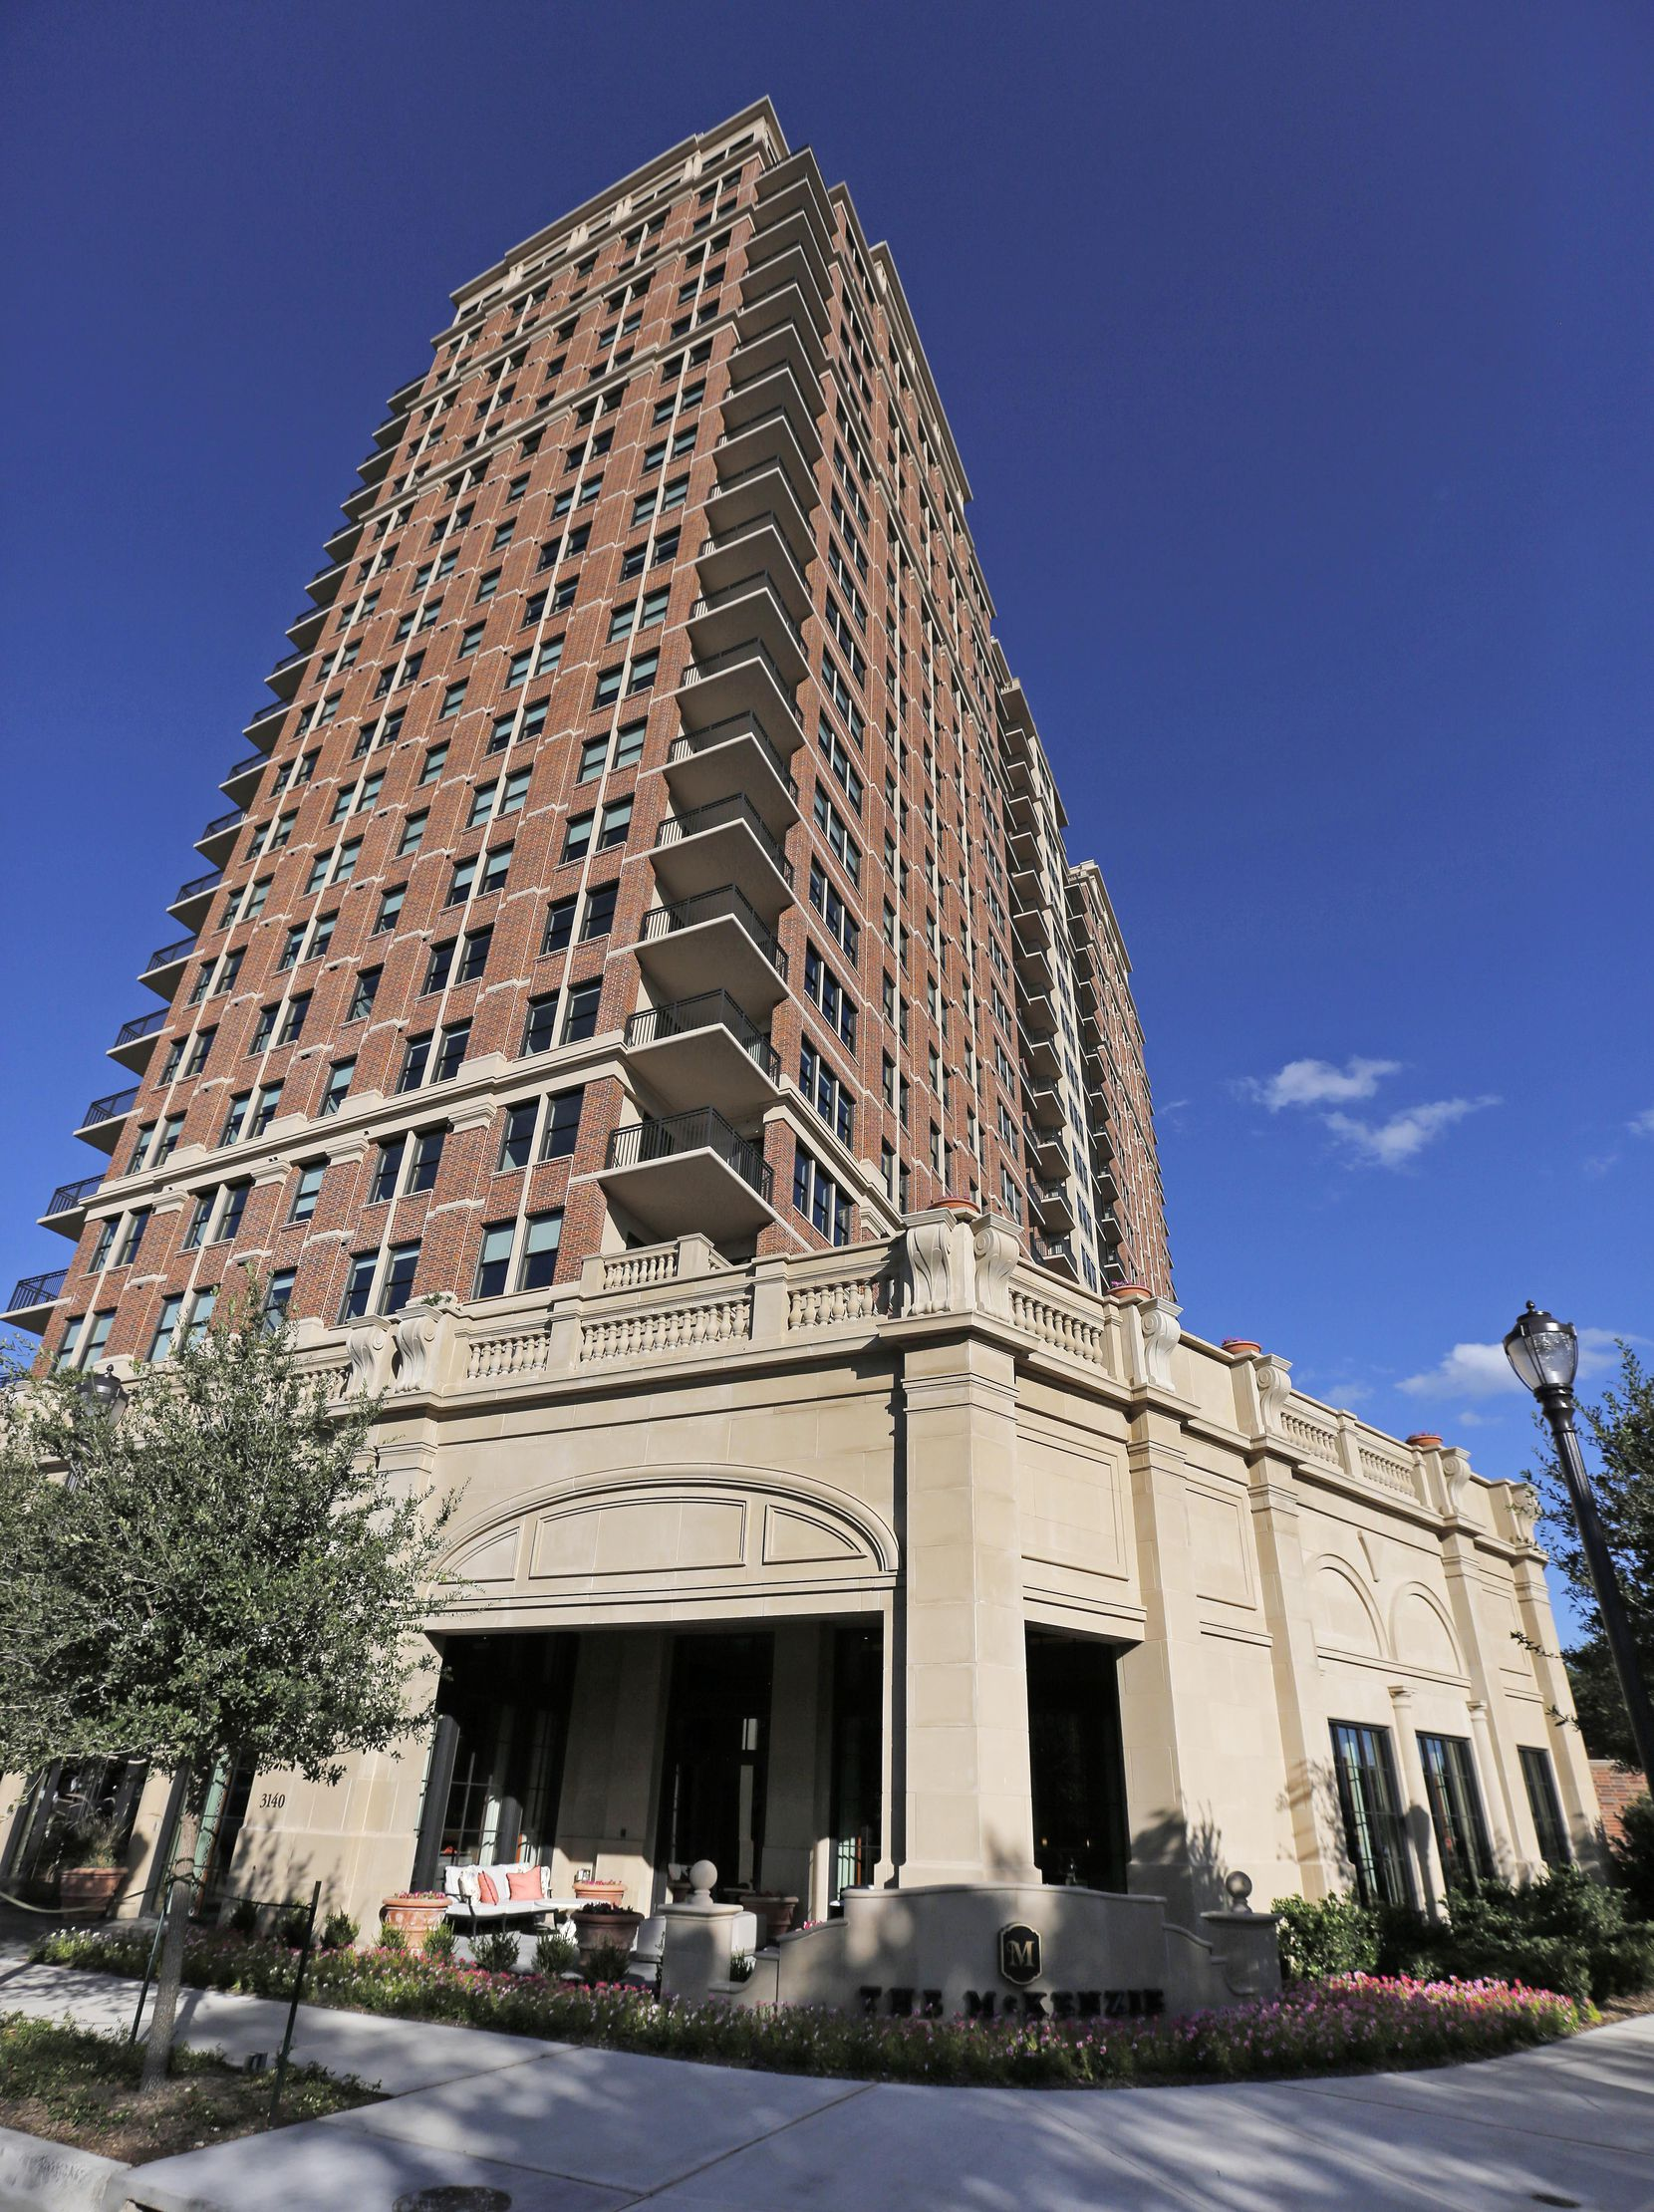 The McKenzie, a new luxury residential tower on the edge of Highland Park, has 183 units.